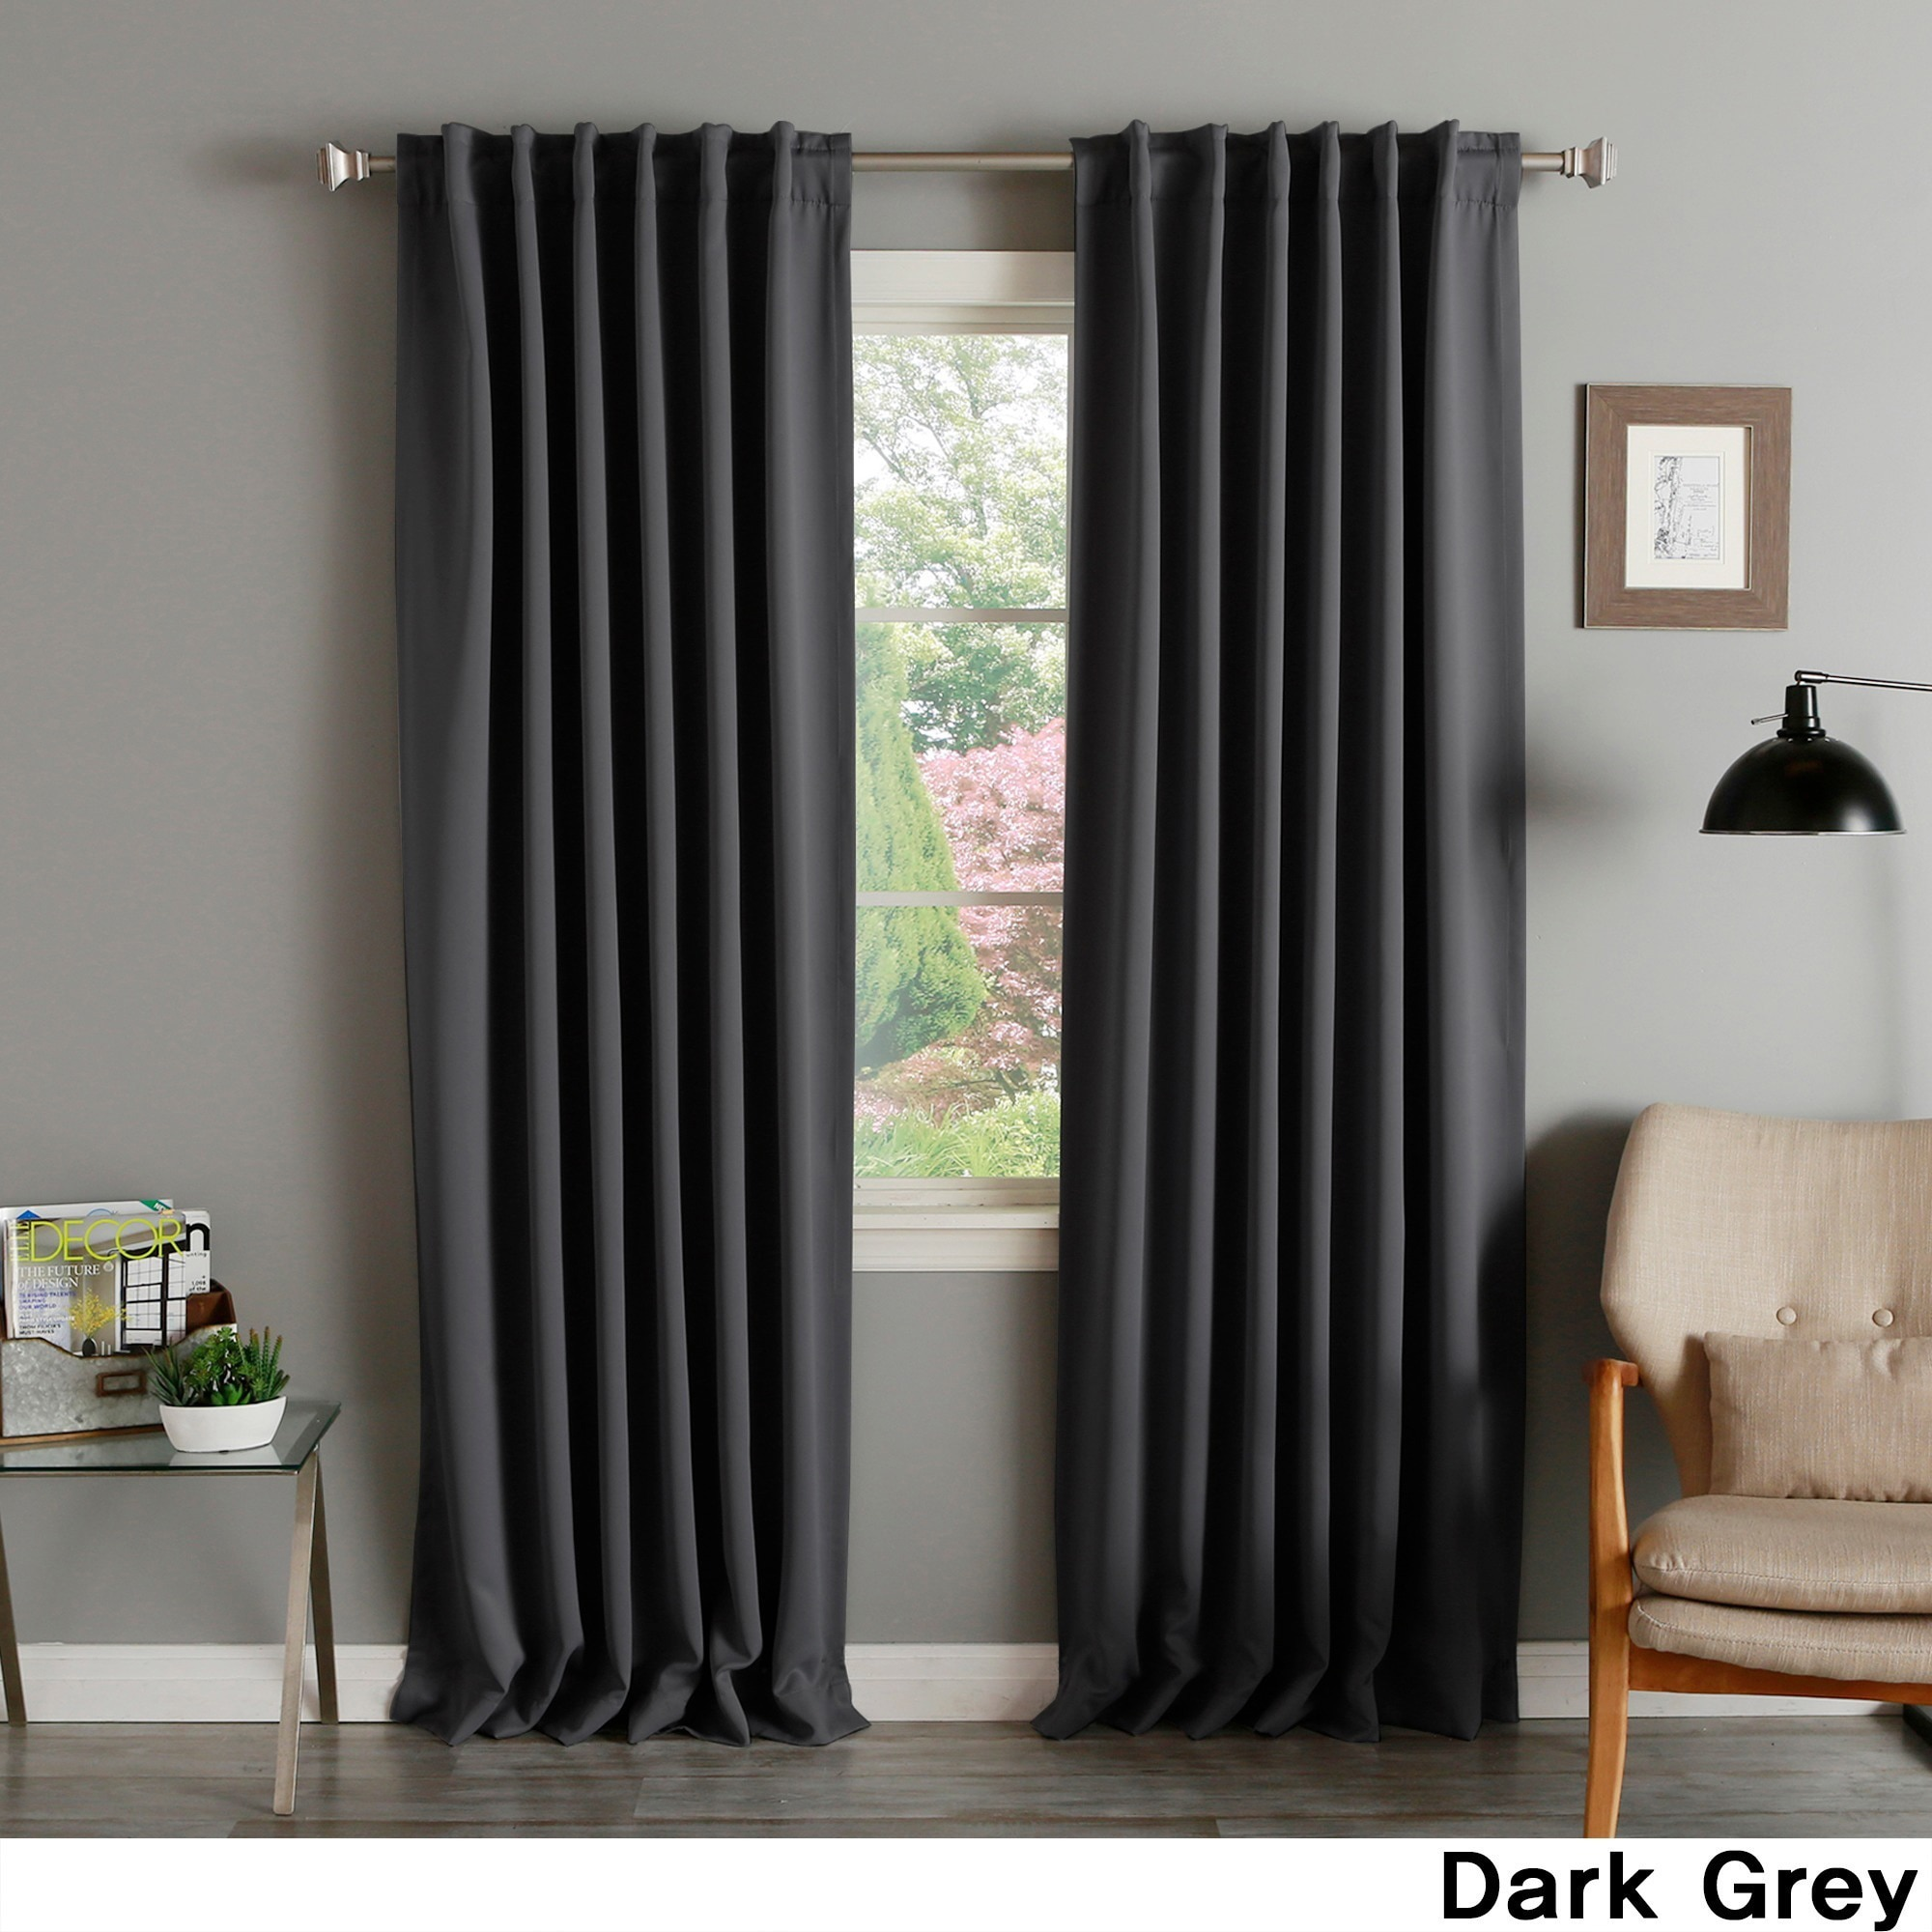 Aurora Home Solid Thermal Insulated 108 Inch Blackout Curtain Panel Pair 52 X 108 52 X 108 On Sale Overstock 4224348